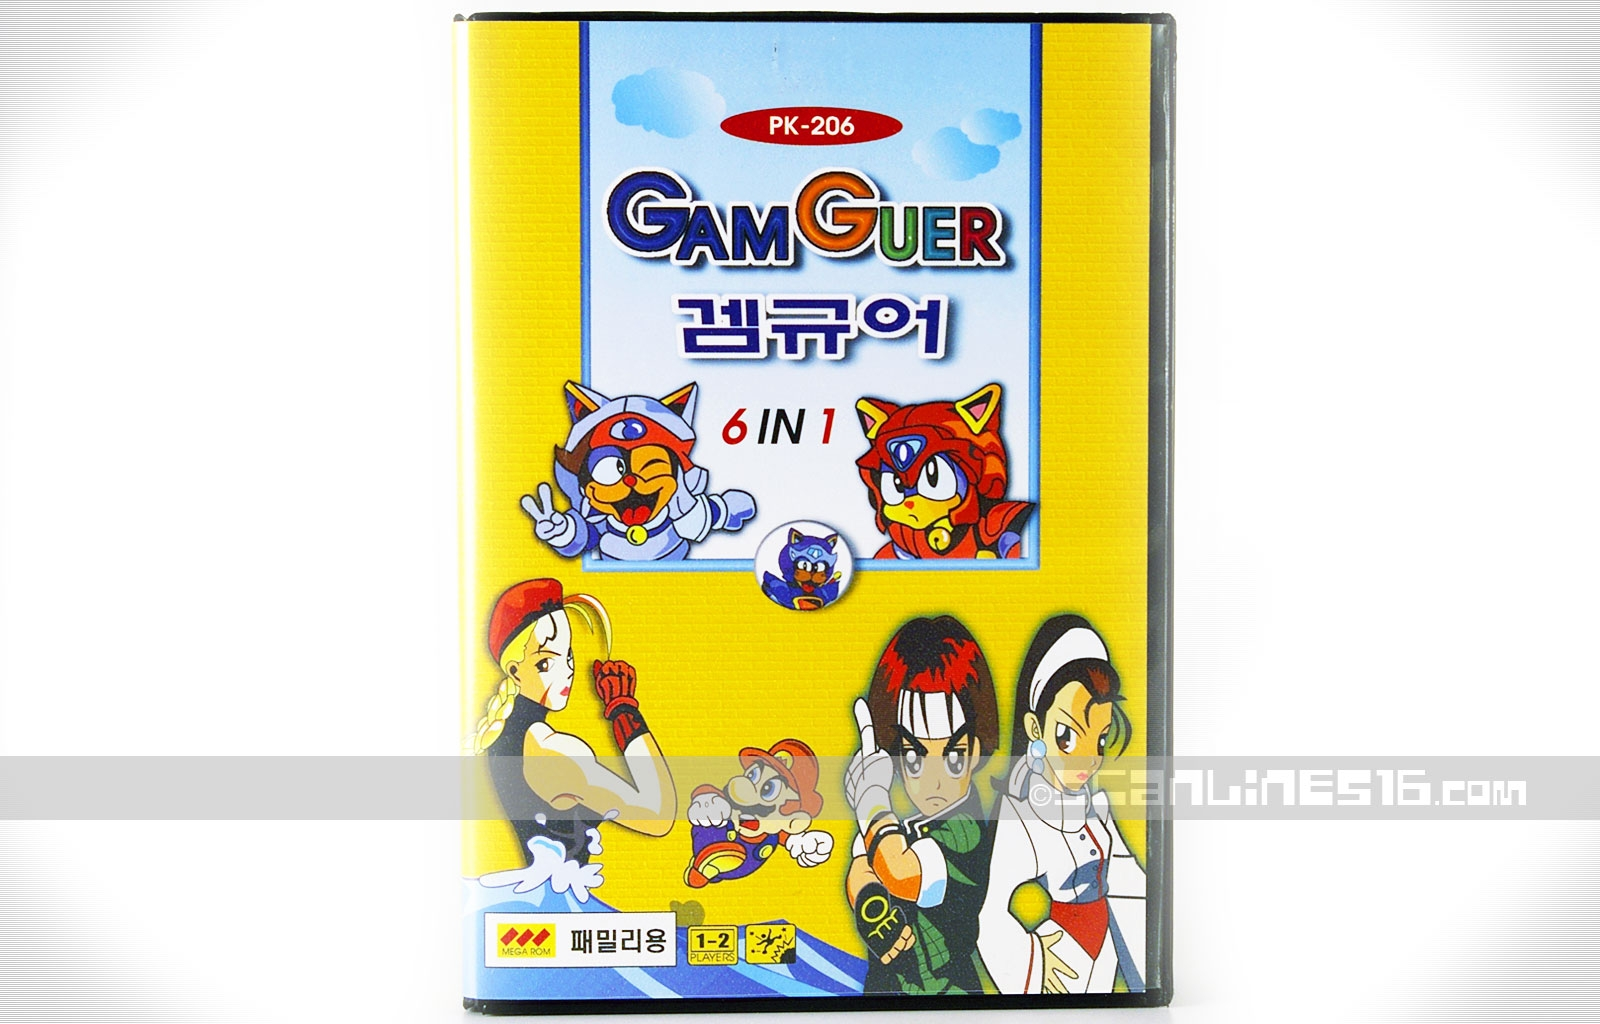 famicom-gamguer6in1_01_1600